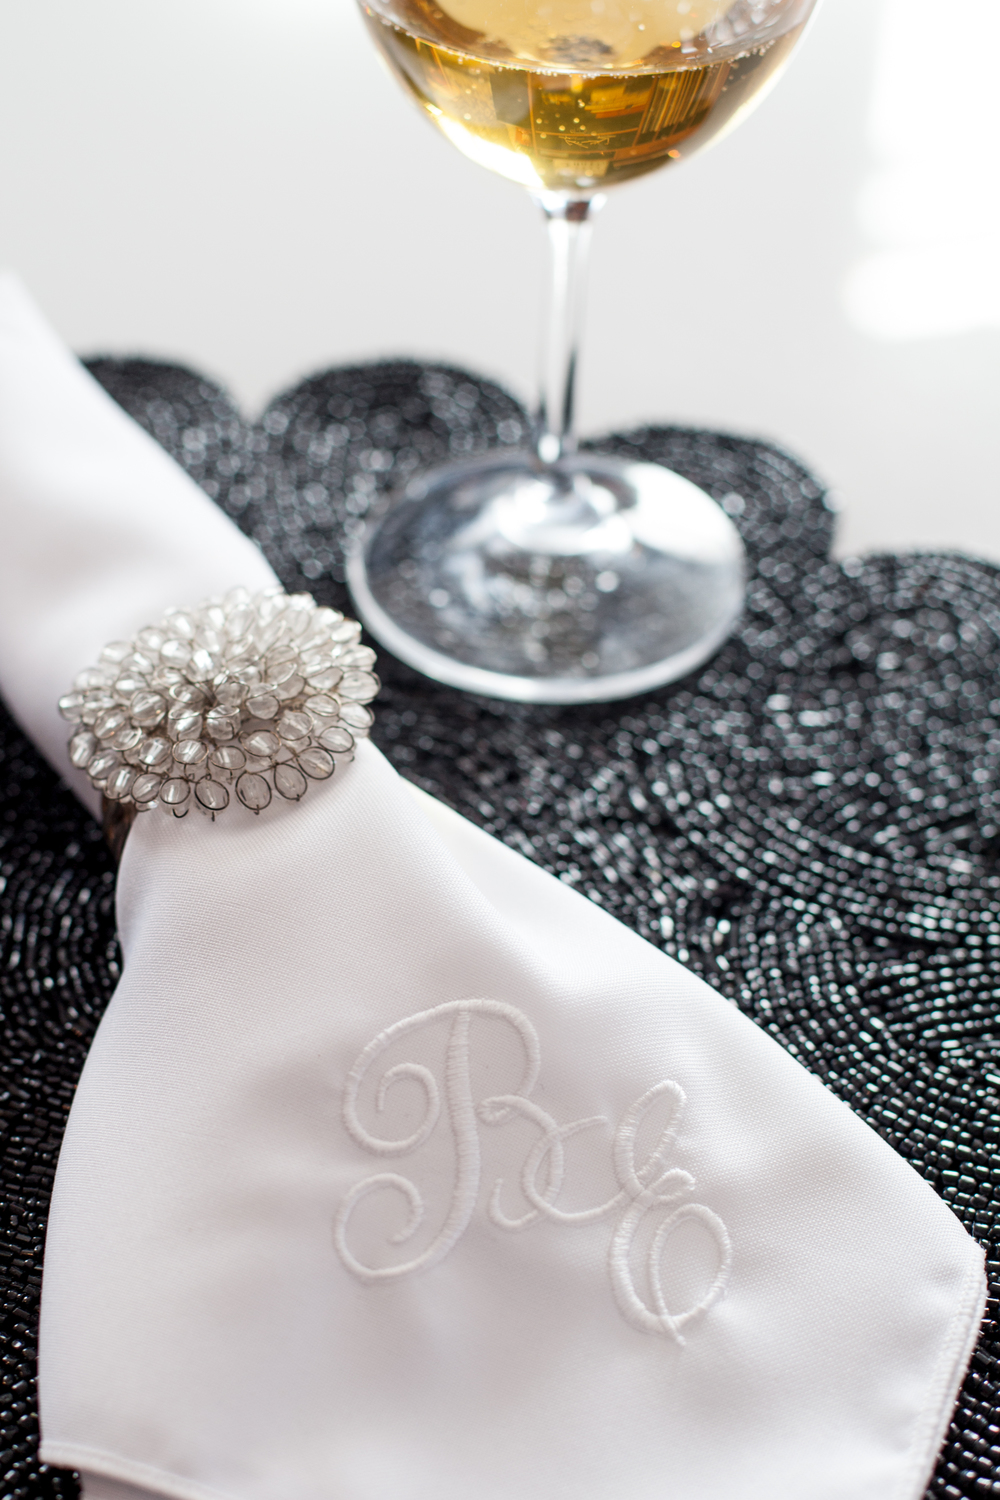 Personalized Linens-thedetaileddiva.com.jpg